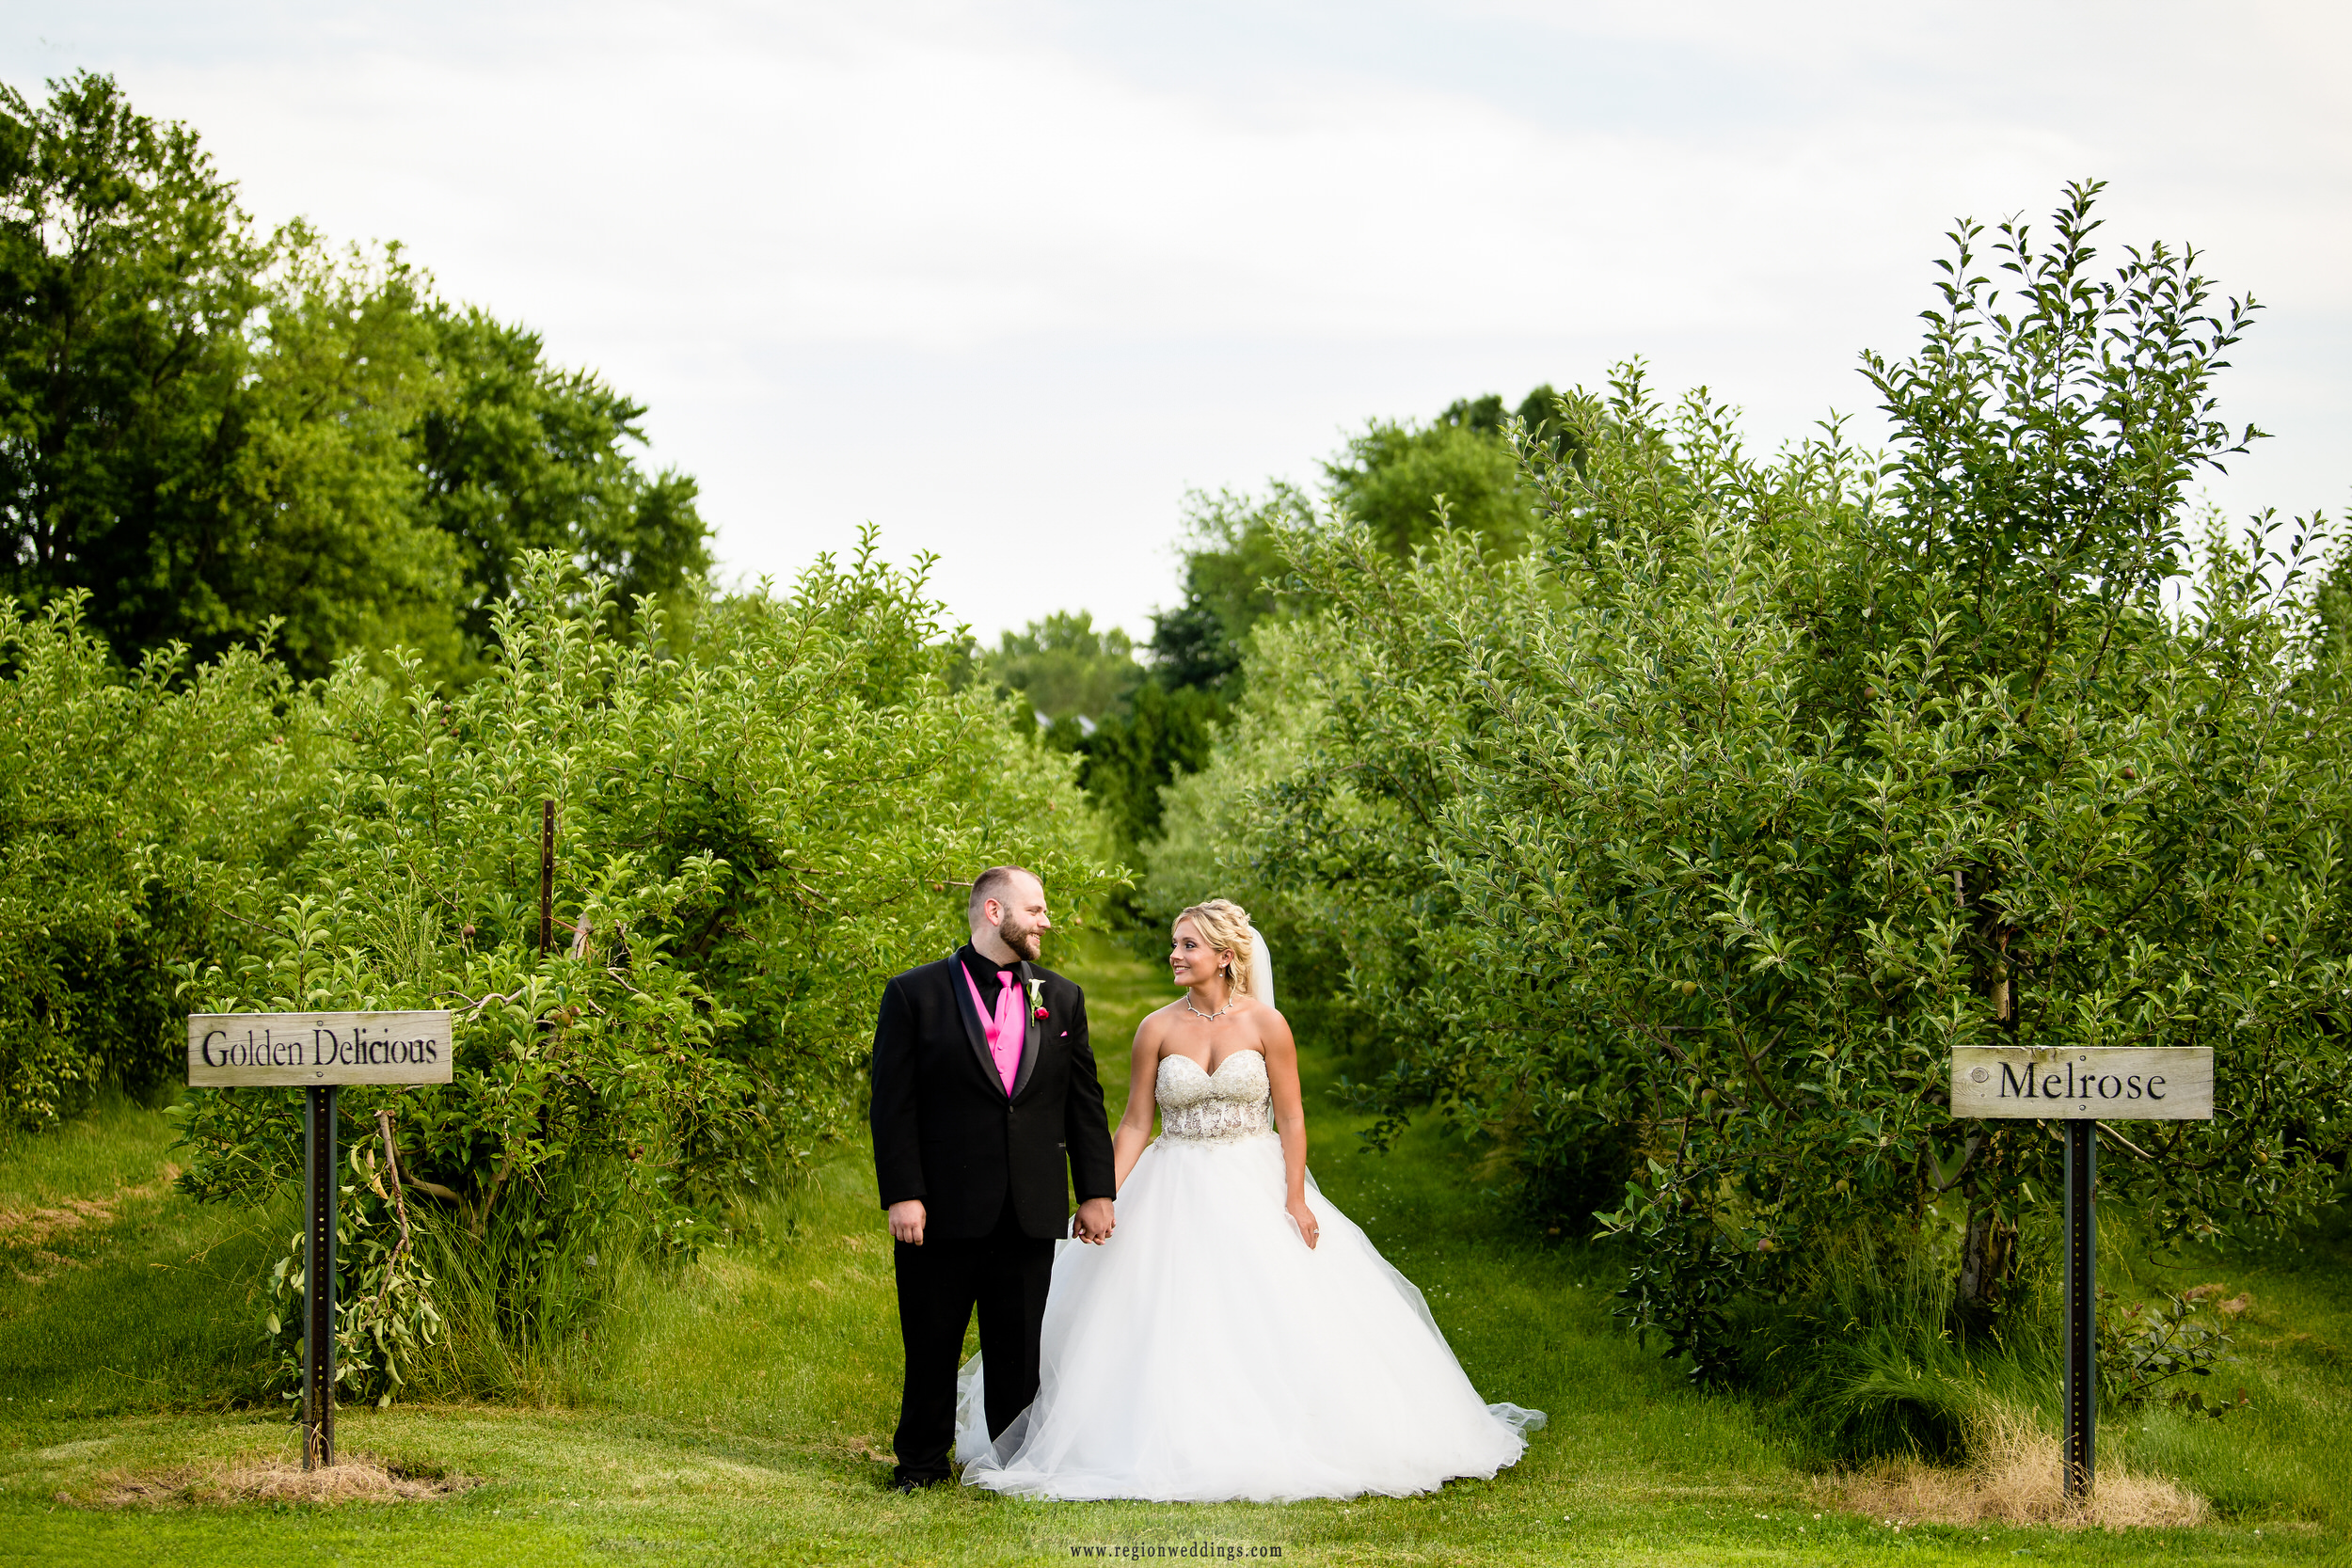 Bride and groom walk the apple orchards during their summer wedding.